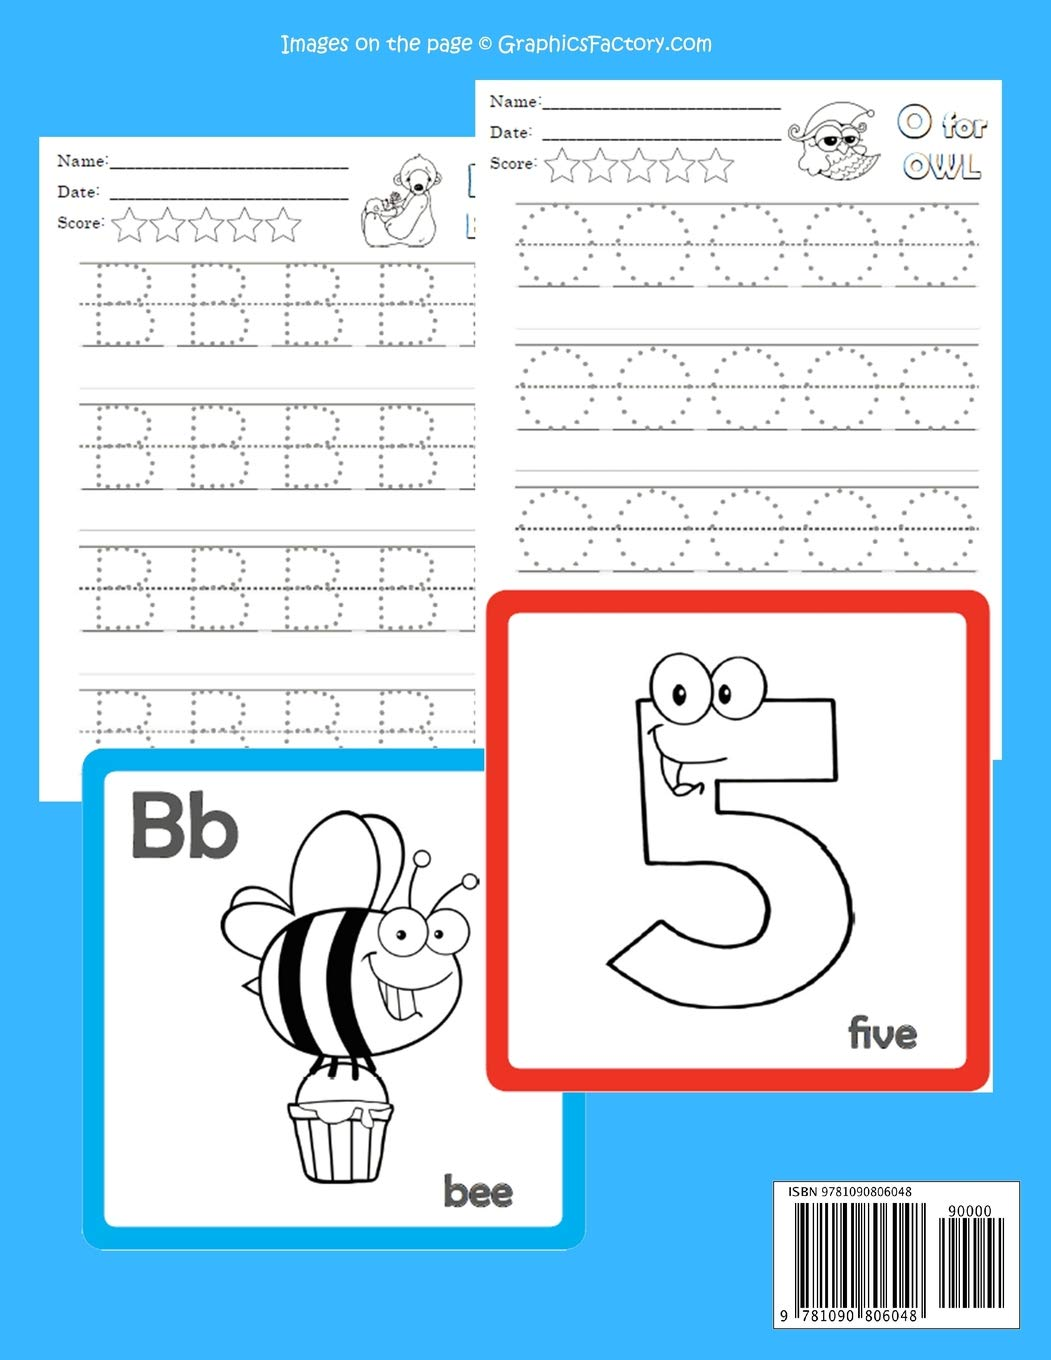 preschoolers and kindergarten trace Age 2-5 toddlers Practice handwriting plus fun ABCs flash cards games ABC Numbers Tracing Books with Flashcards for Toddlers: Lets kids learn to read write and color alphabets and numbers worksheets for babies